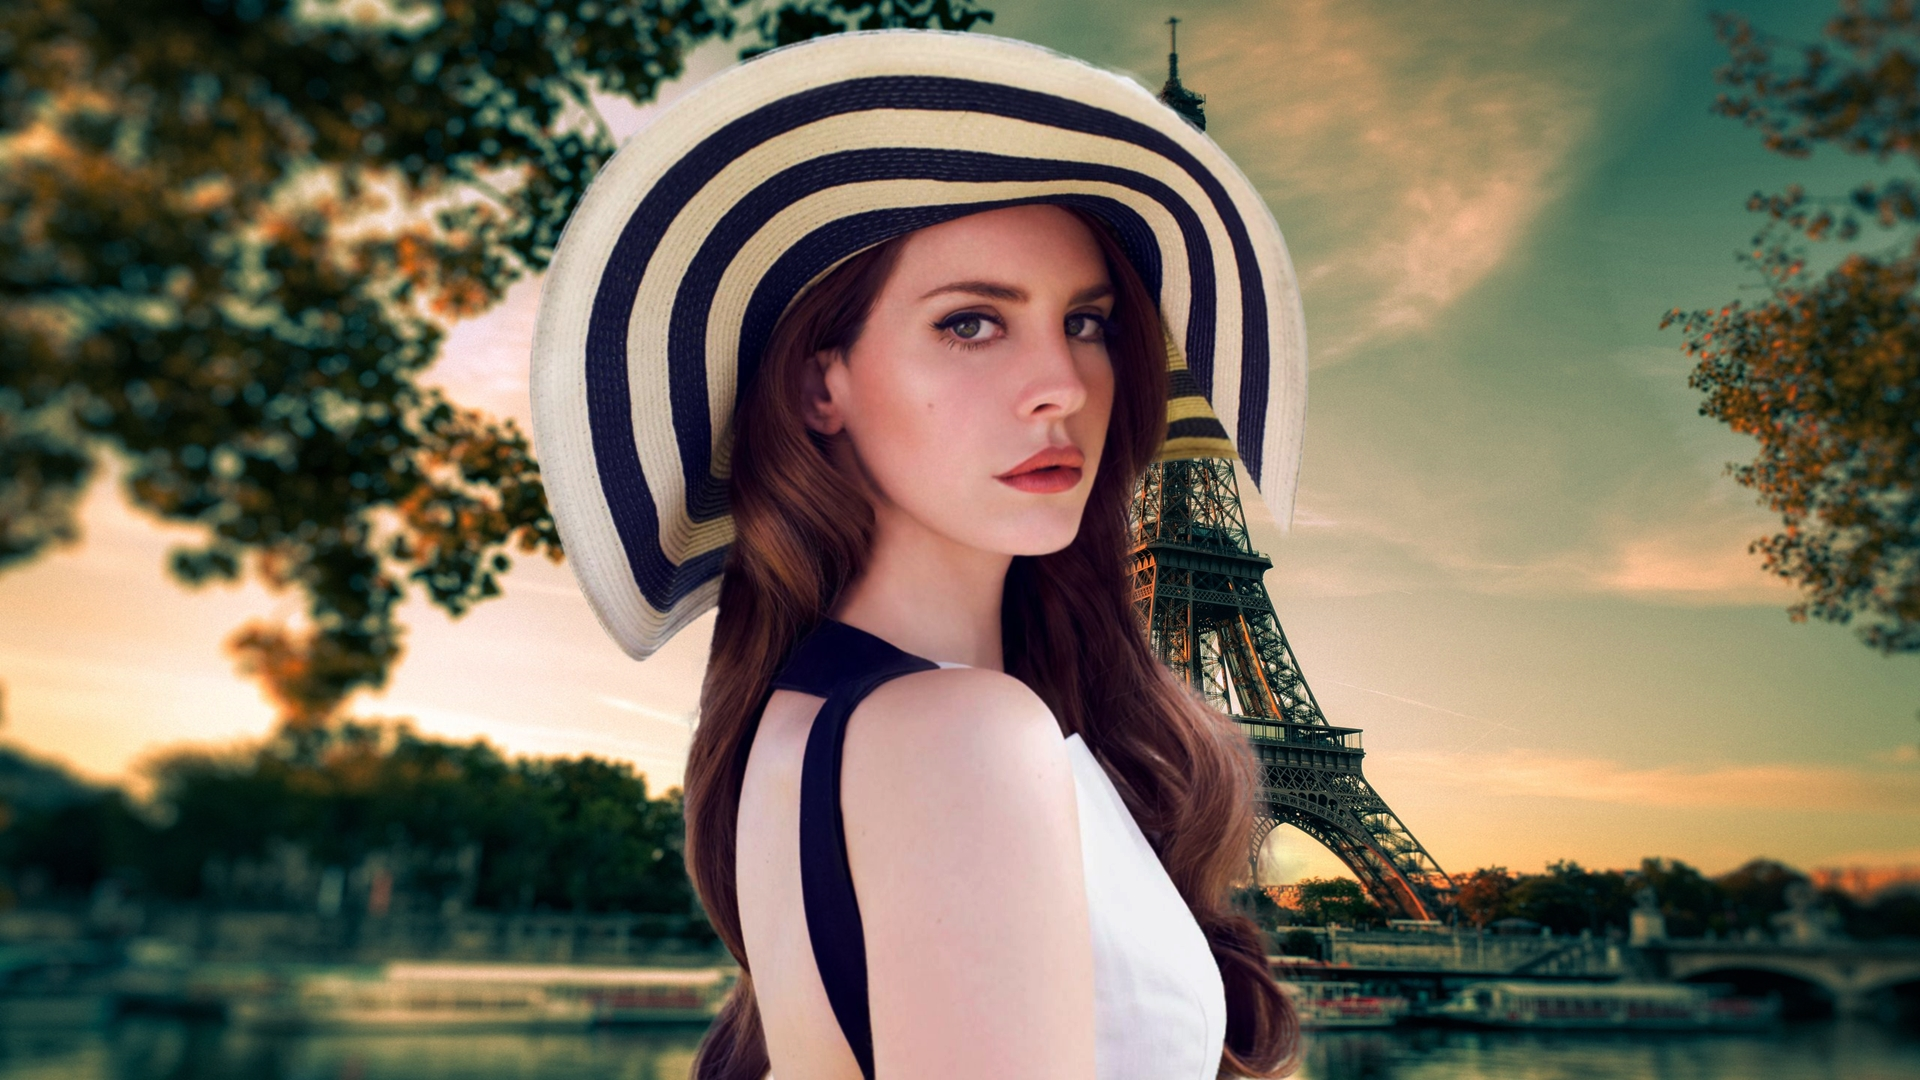 Best Mobile Quotes Wallpapers Lana Del Rey Wallpapers Pixelstalk Net